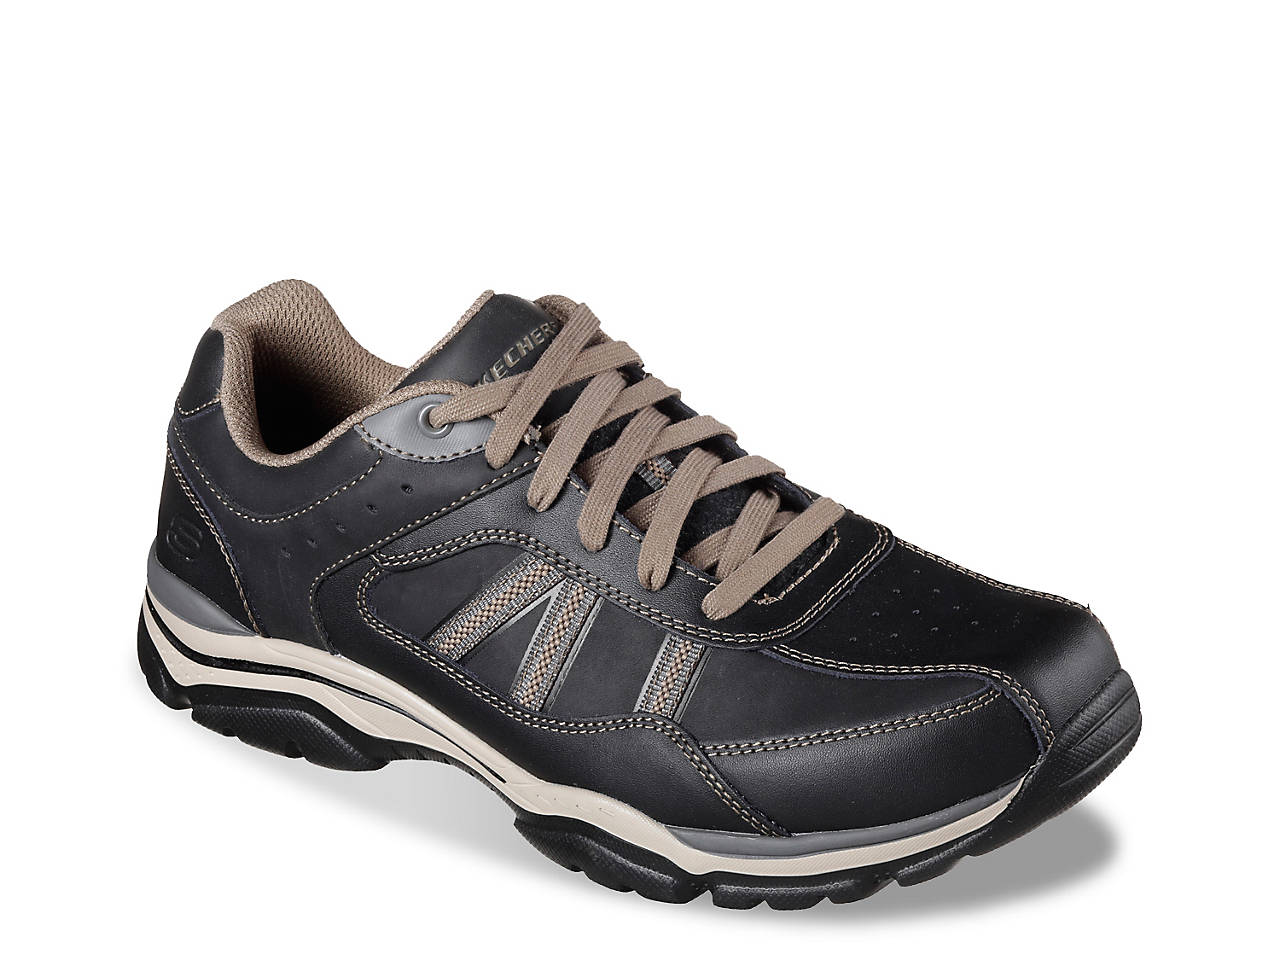 Skechers Relaxed Fit Rovato Texon Sneaker(Men's) -Black/Taupe Outlet Get To Buy Discount Really 100% Authentic Cheap Online Looking For Cheap Online Sale Discount v2P3mFp0Md